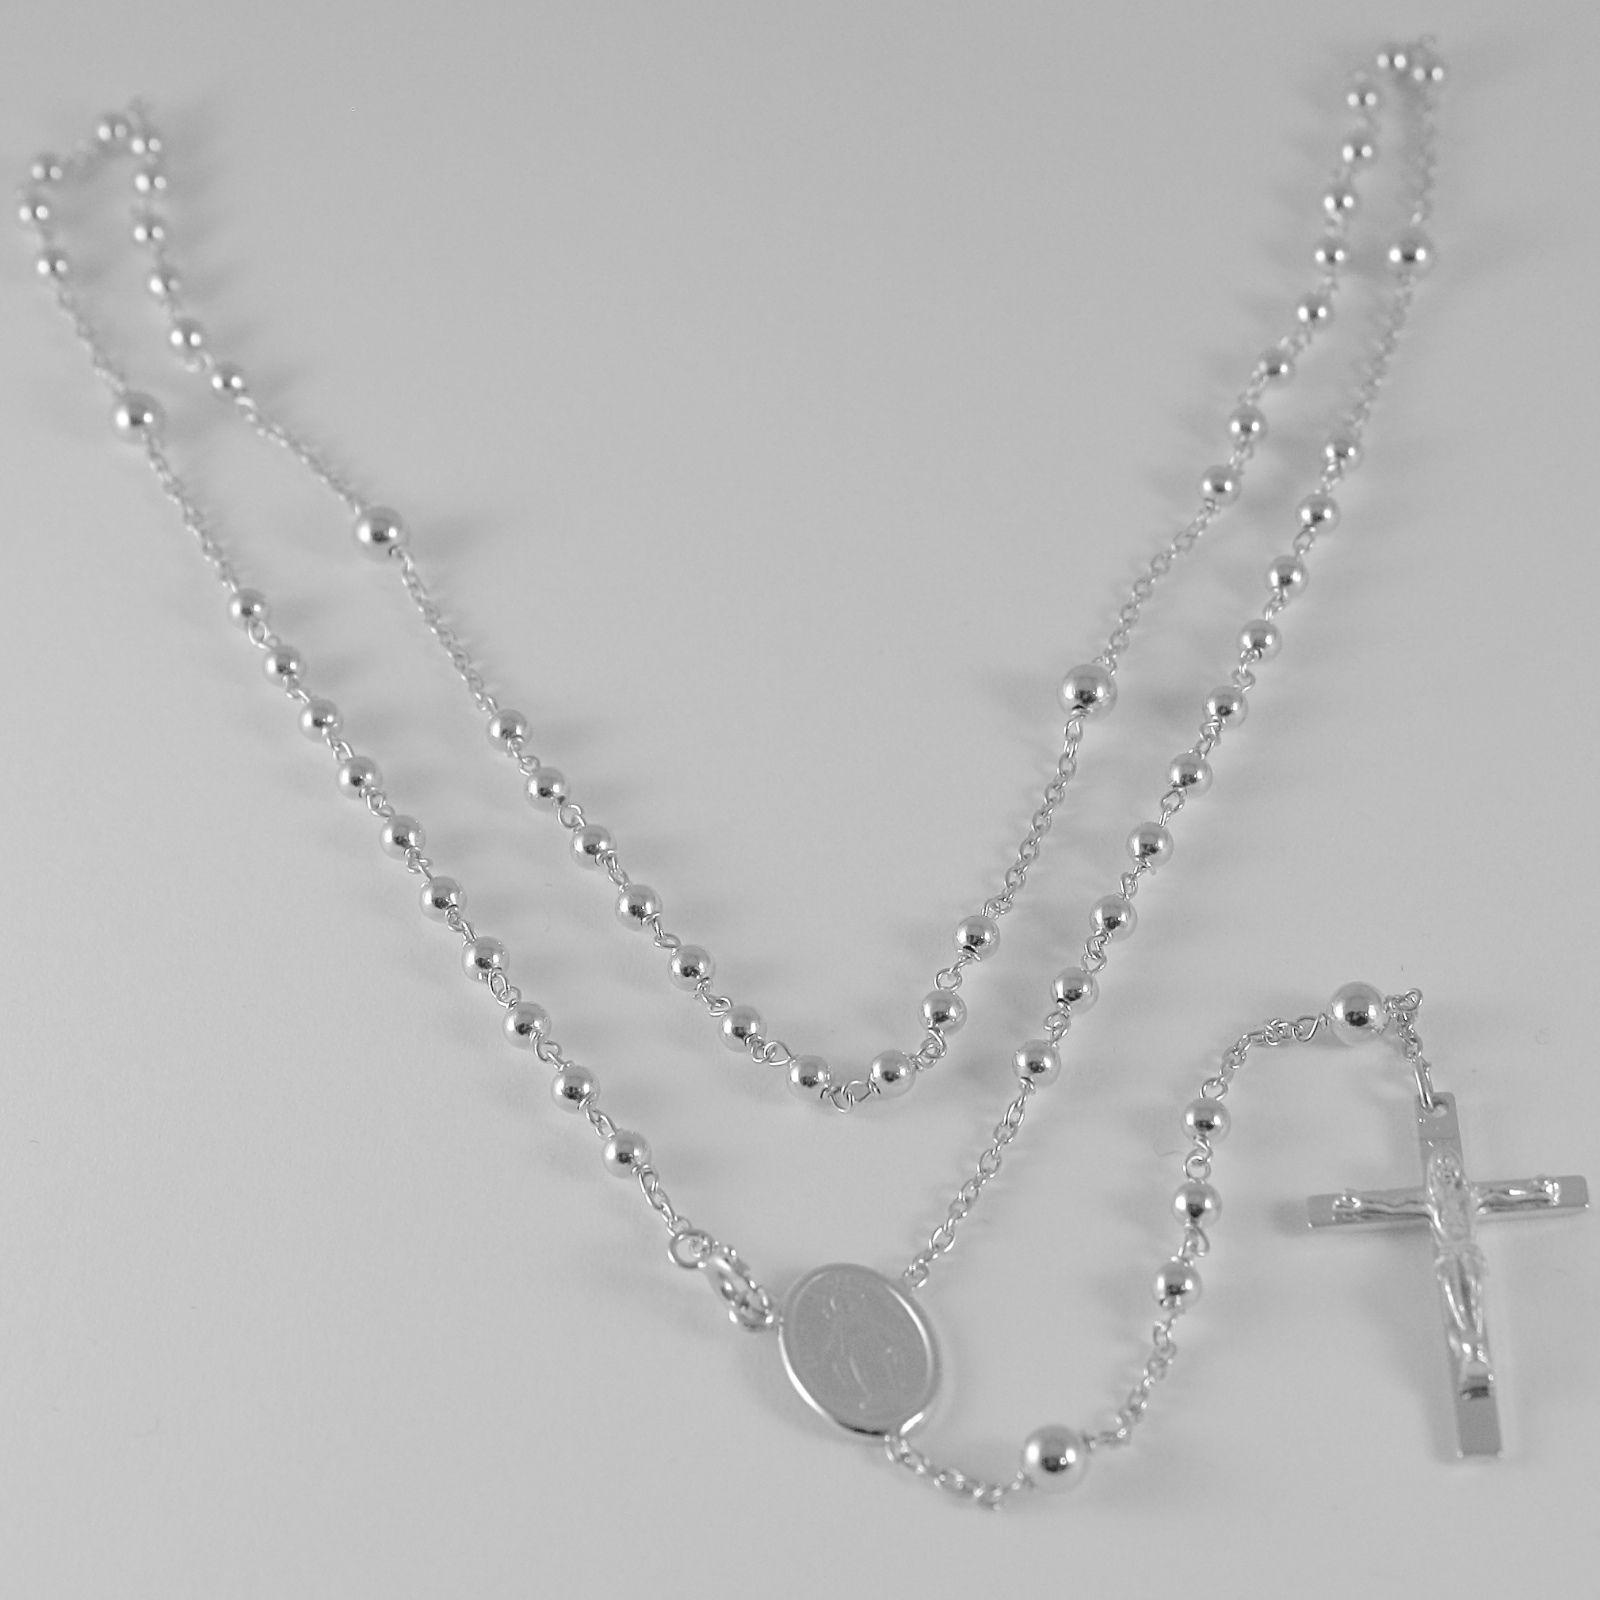 18K WHITE GOLD ROSARY NECKLACE MIRACULOUS MARY MEDAL & JESUS CROSS ITALY MADE